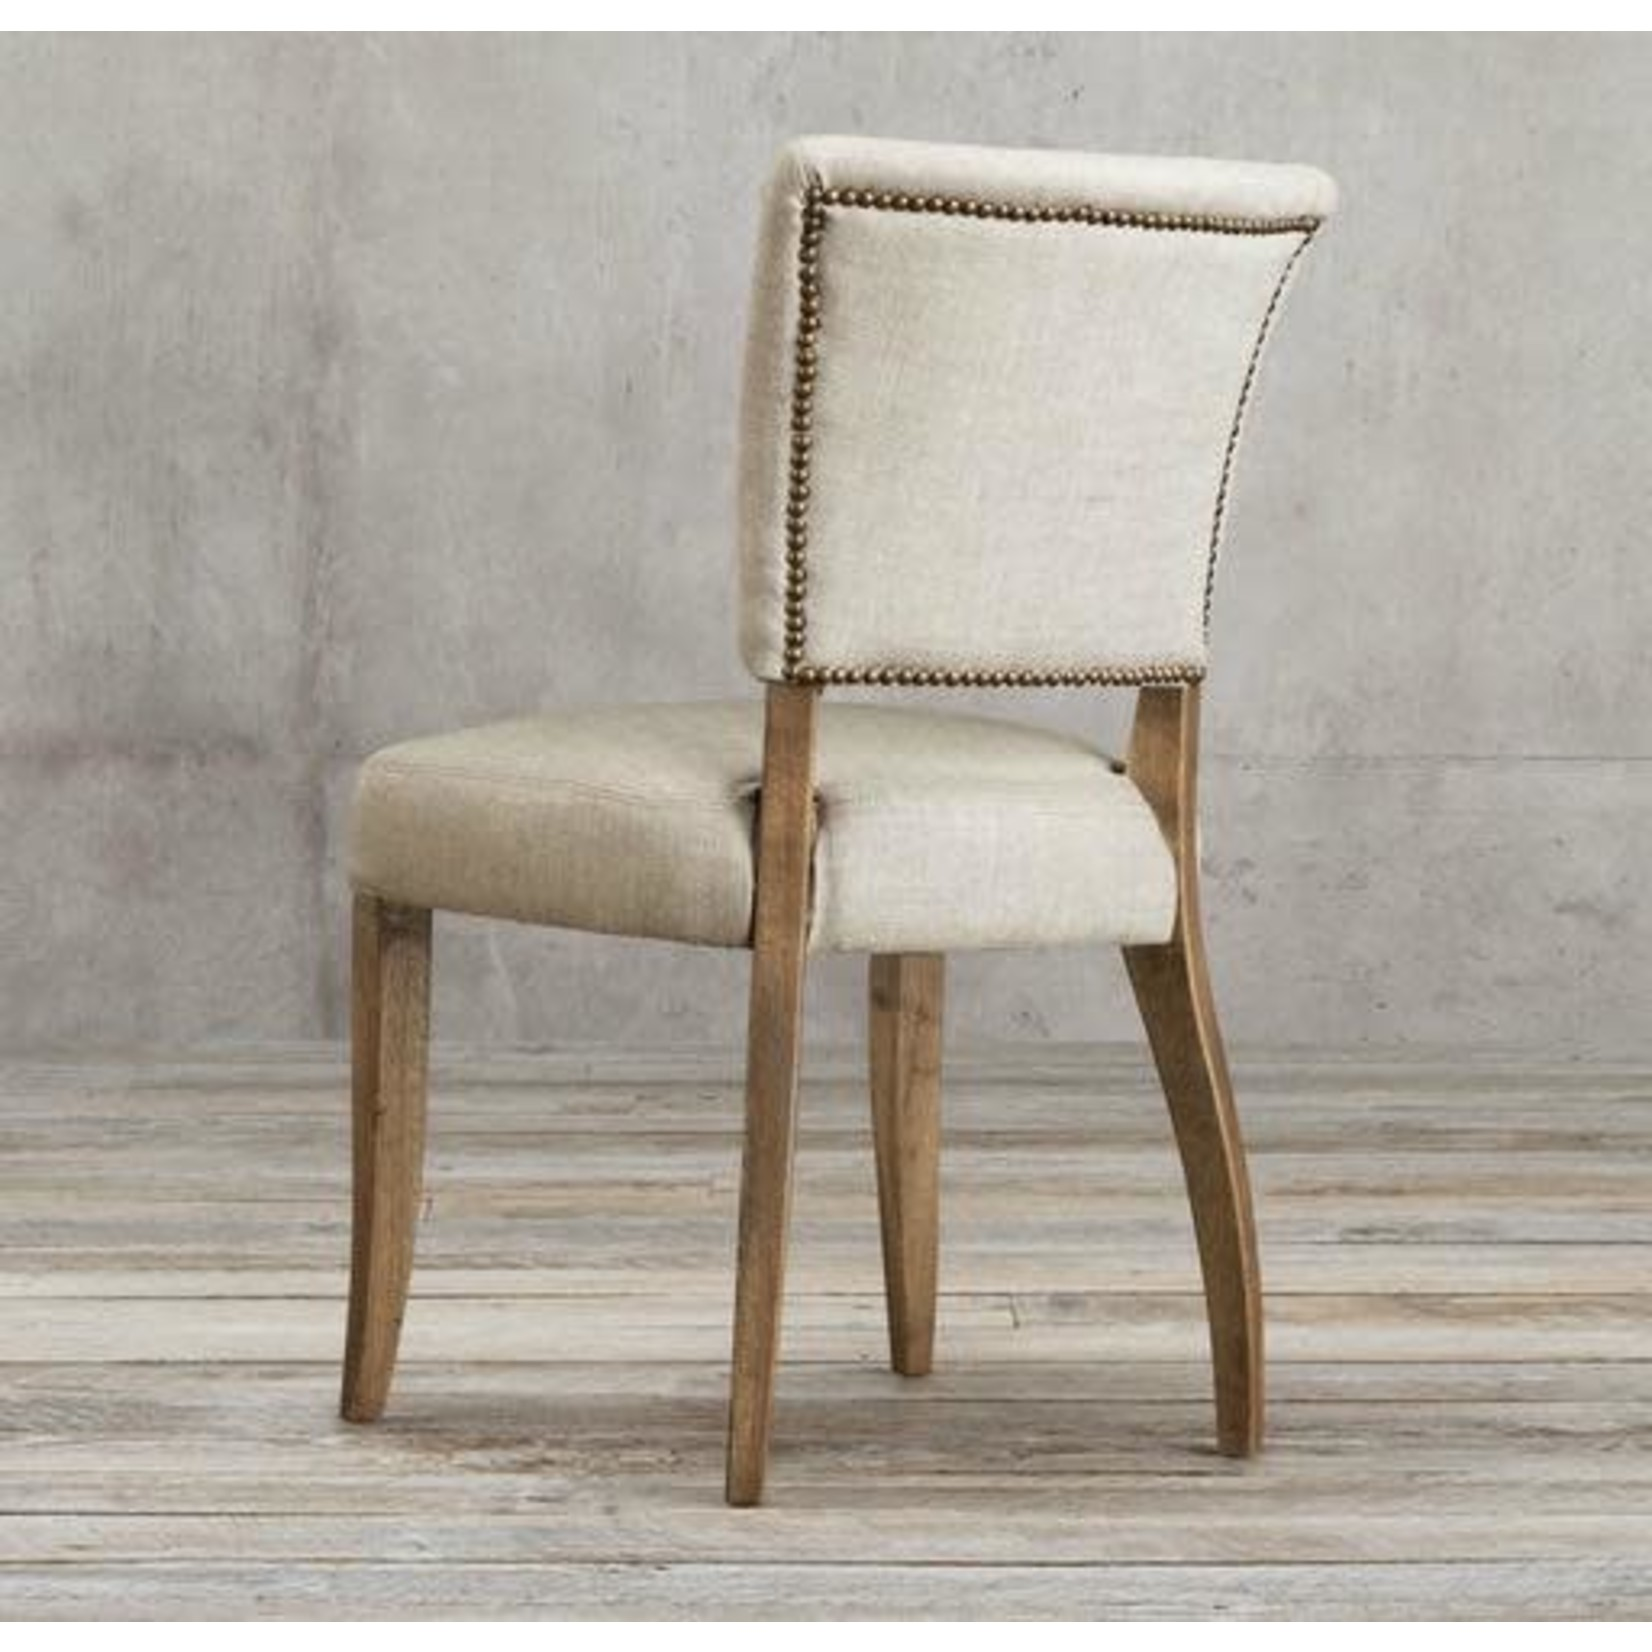 TIMOTHY OULTON MIMI DINING CHAIR GALTA LINEN CREMA WETHER OAK